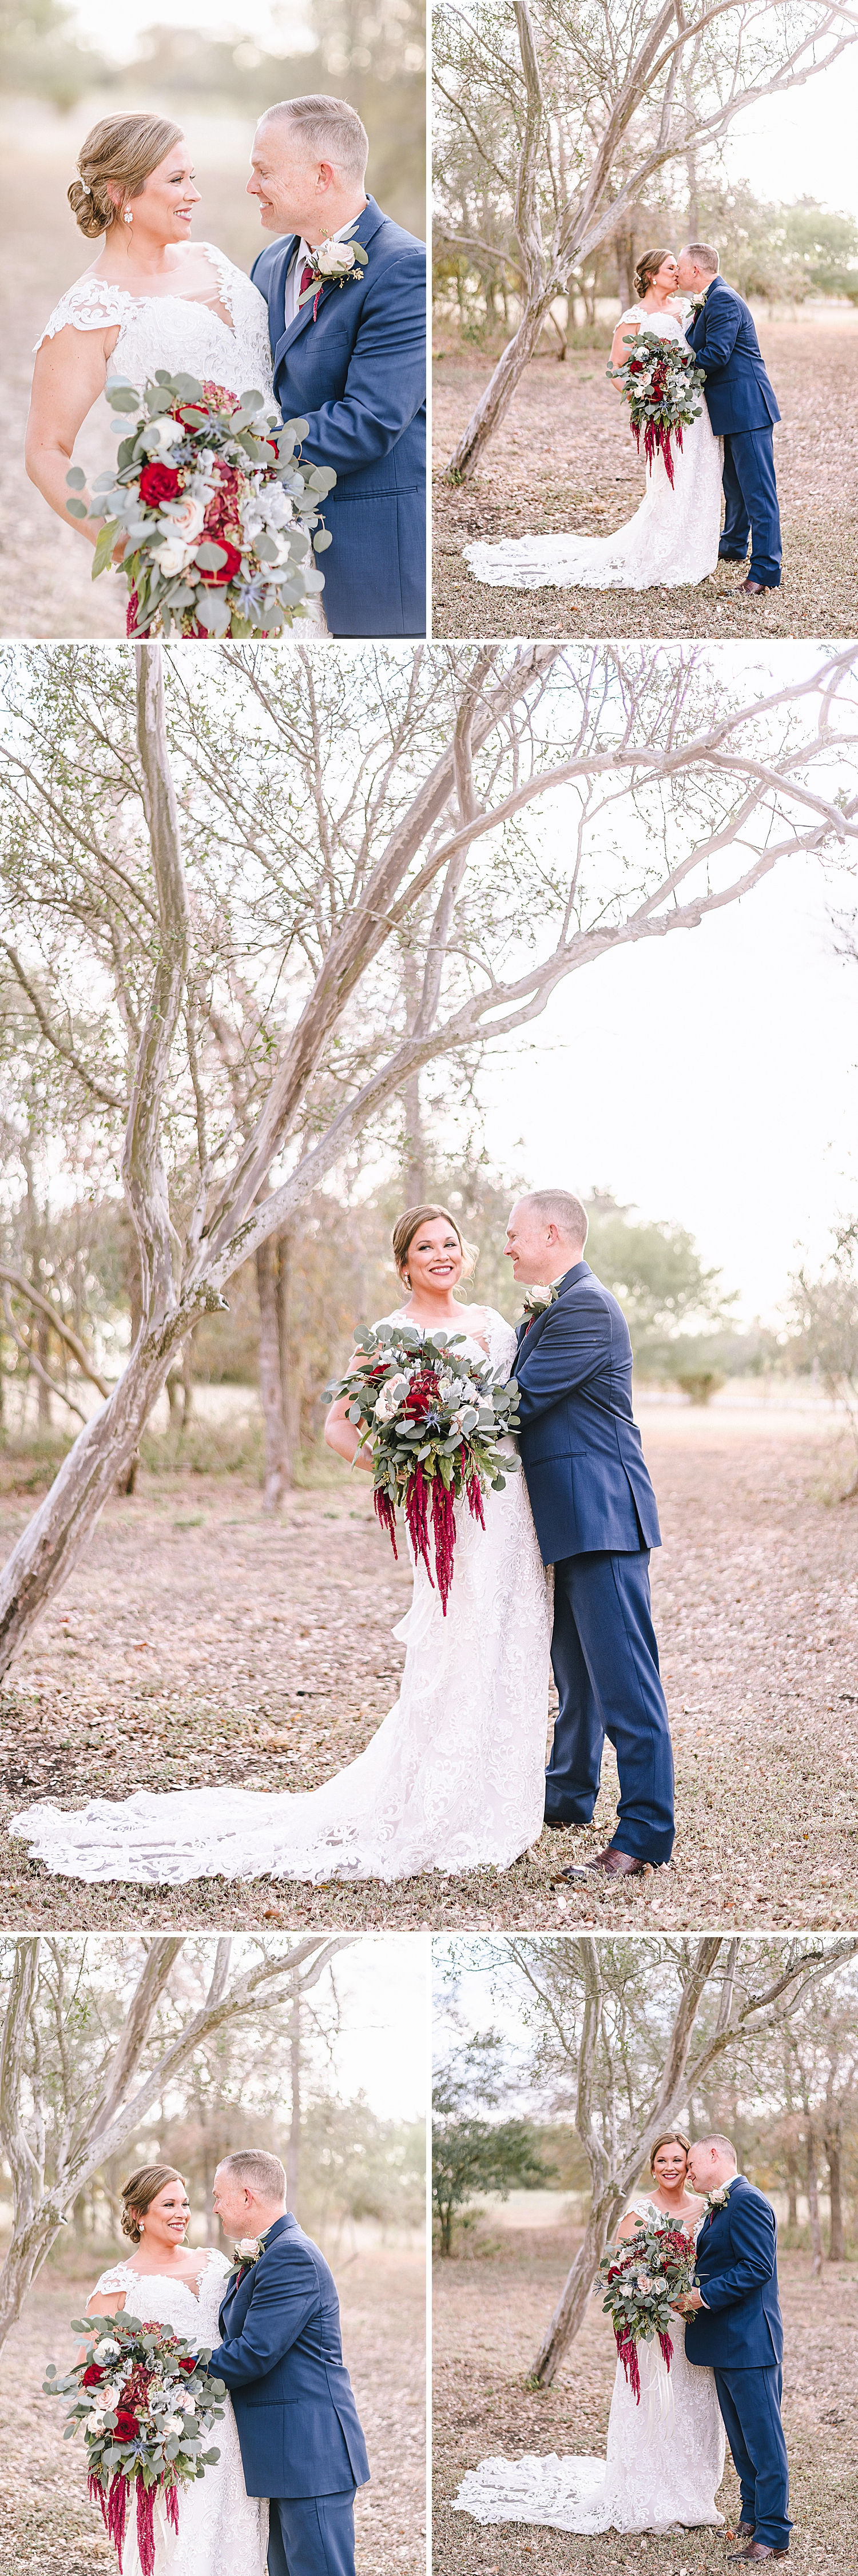 Geronimo-Oaks-Wedding-Venue-Seguin-Texas-Elegant-Navy-Burgundy-Wedding-Carly-Barton-Photography_0056.jpg